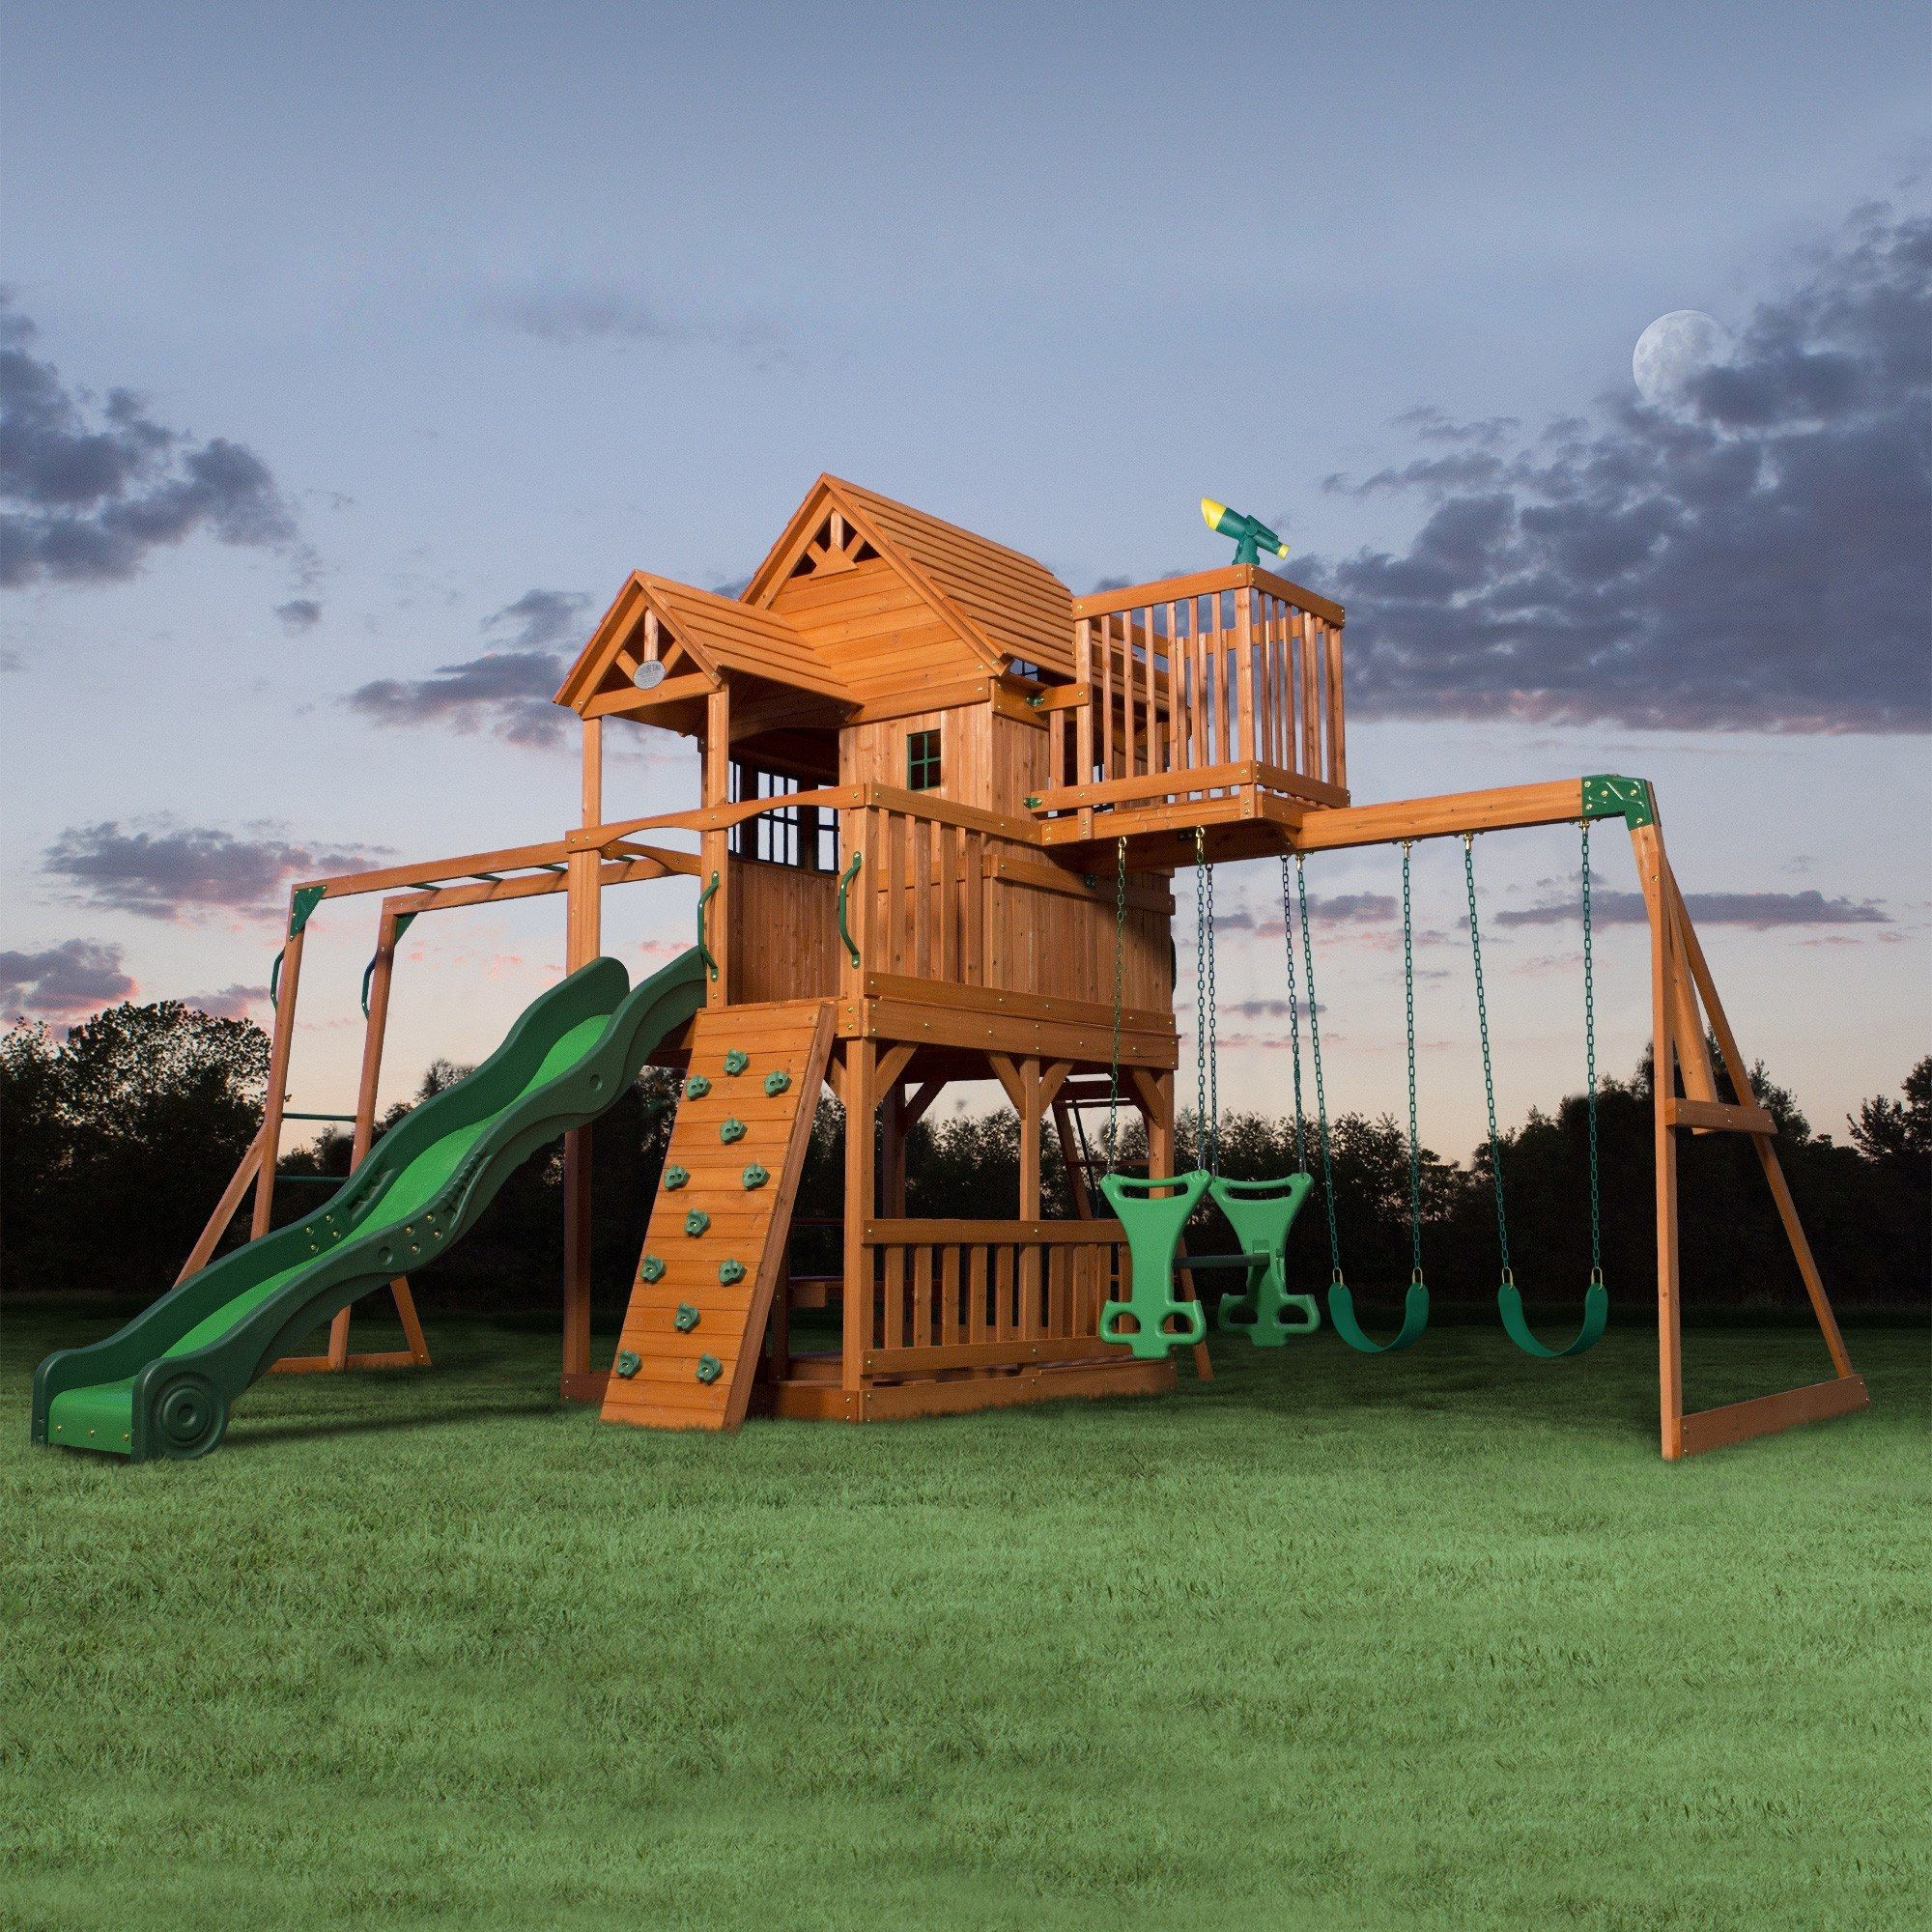 This Outdoor Playset Will Be The Kidsu0027 Favorite, With Its Raised Clubhouse Play  Fort